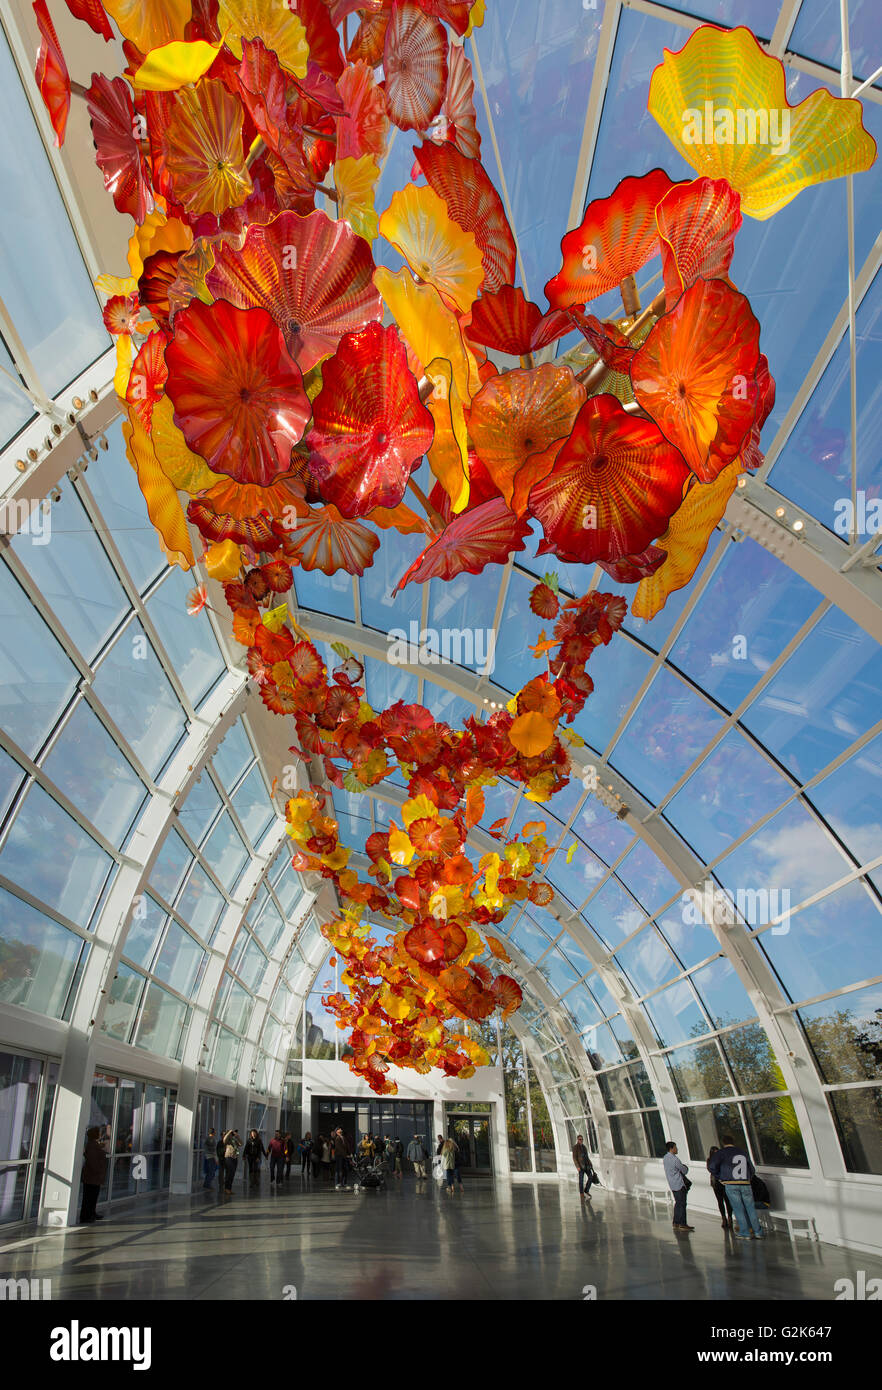 Dale Chihuly Sculptures